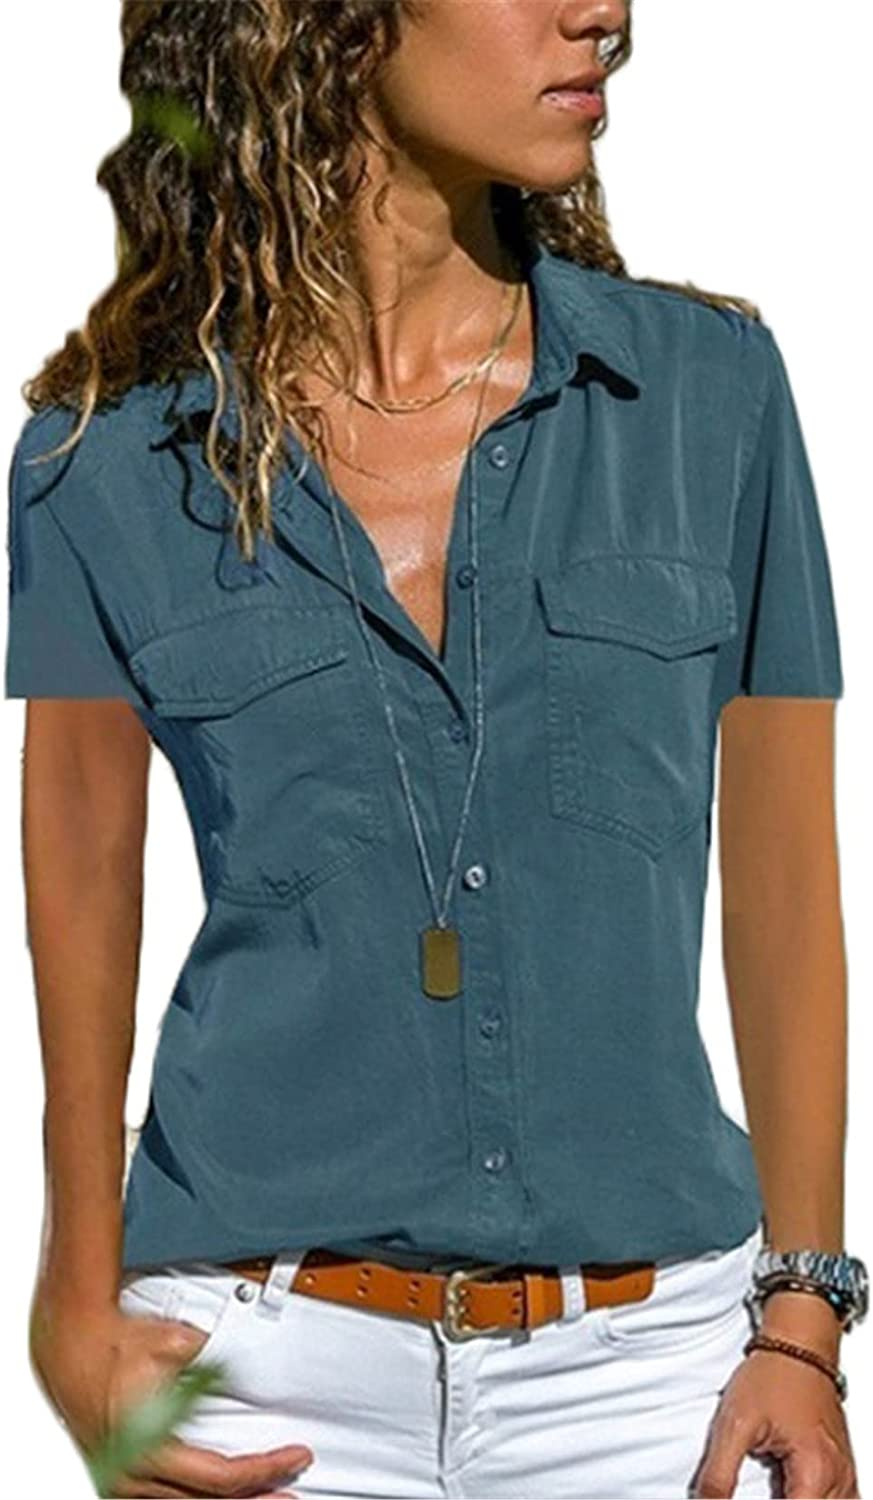 Andongnywell Womens Front Button Down Shirts Short Sleeve Tunic Lapel Tops Blouse Shirts with Pocket